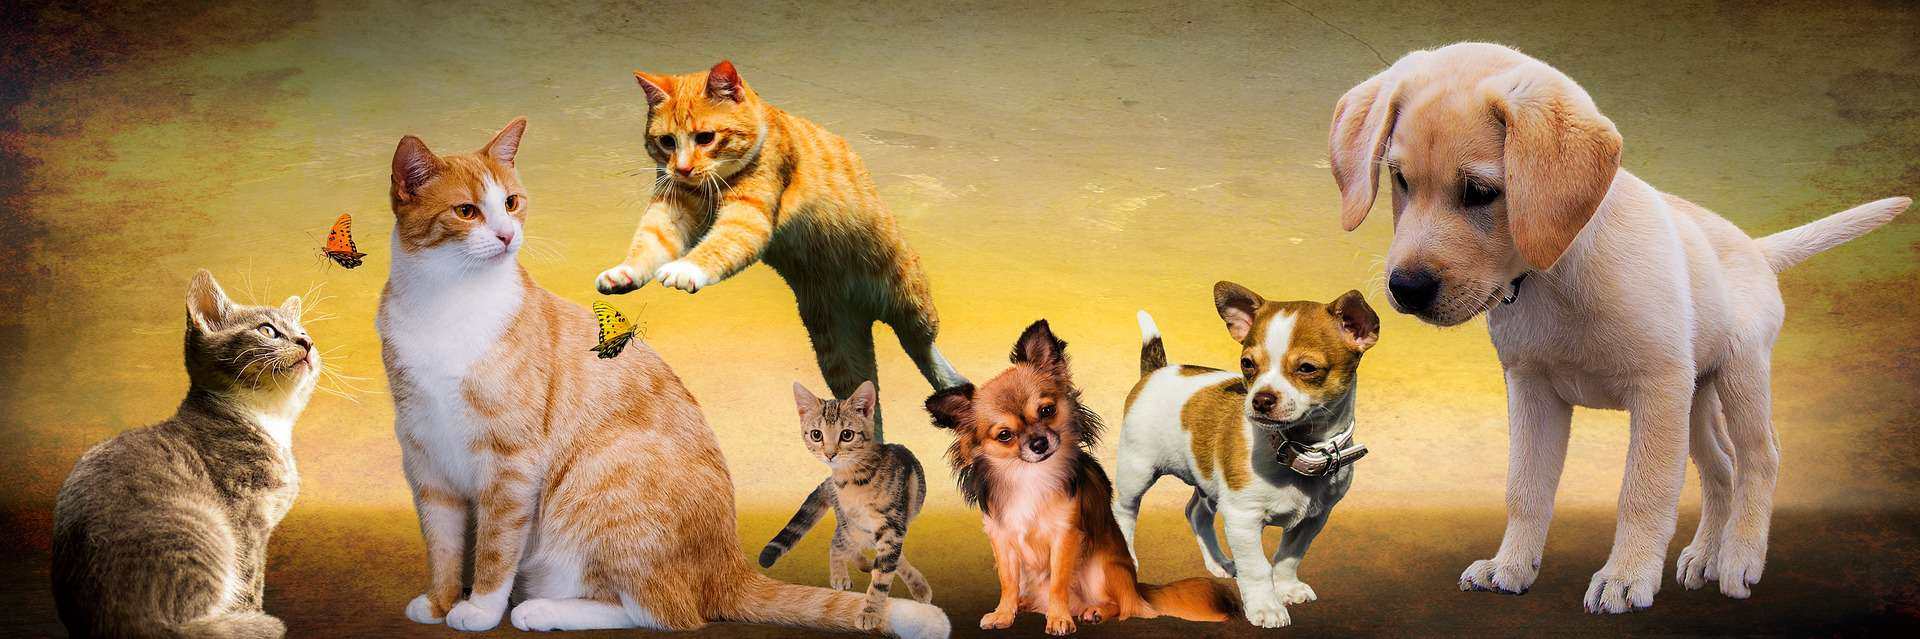 Why Microchip Dogs And Cats: Top Reasons